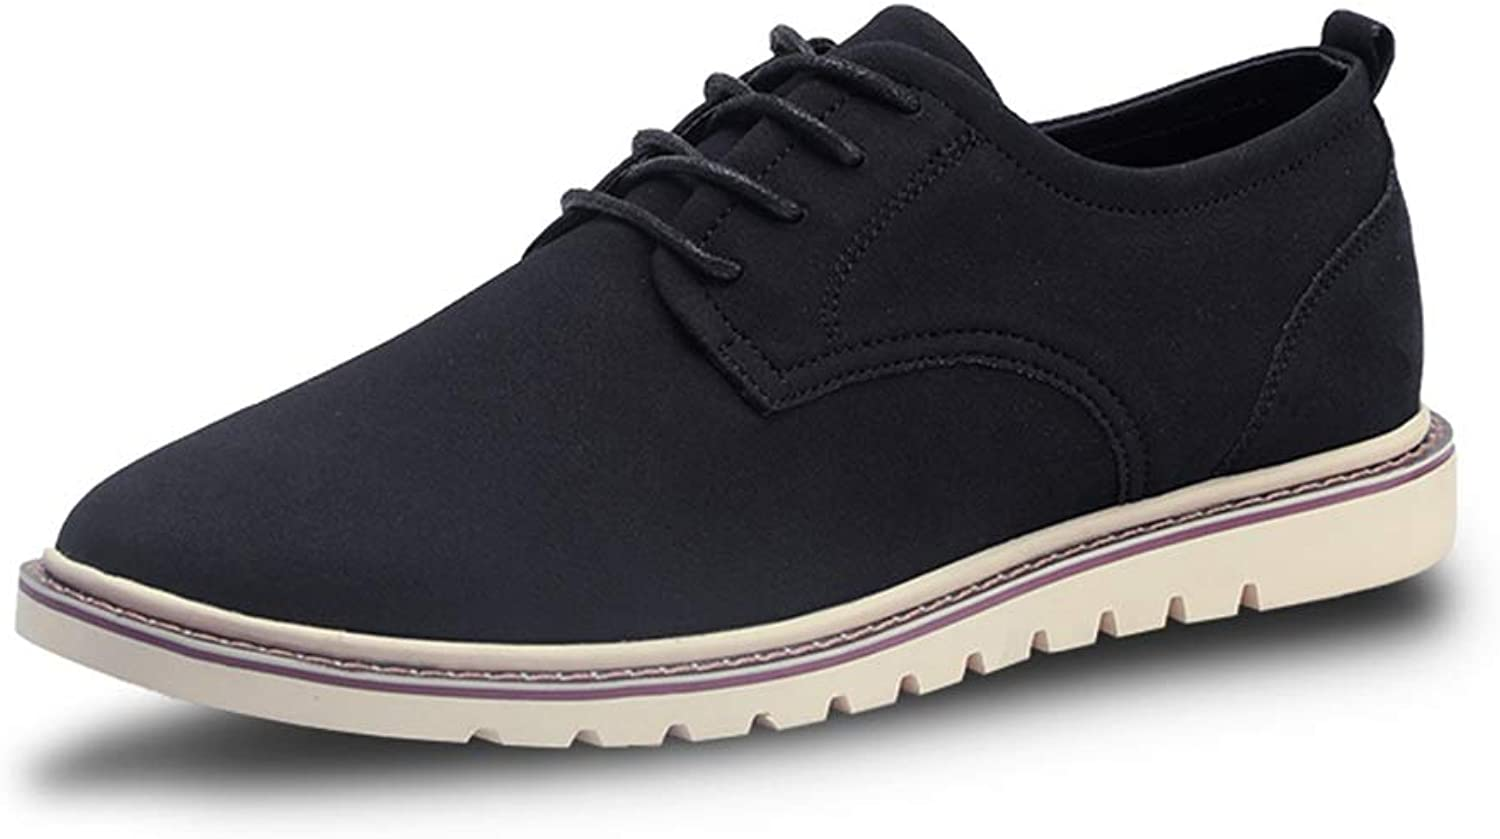 Ino Sneaker shoes Oxford shoes for Men Formal shoes Lace Up Style Microfiber Leather Leisure Sports Style Pure color